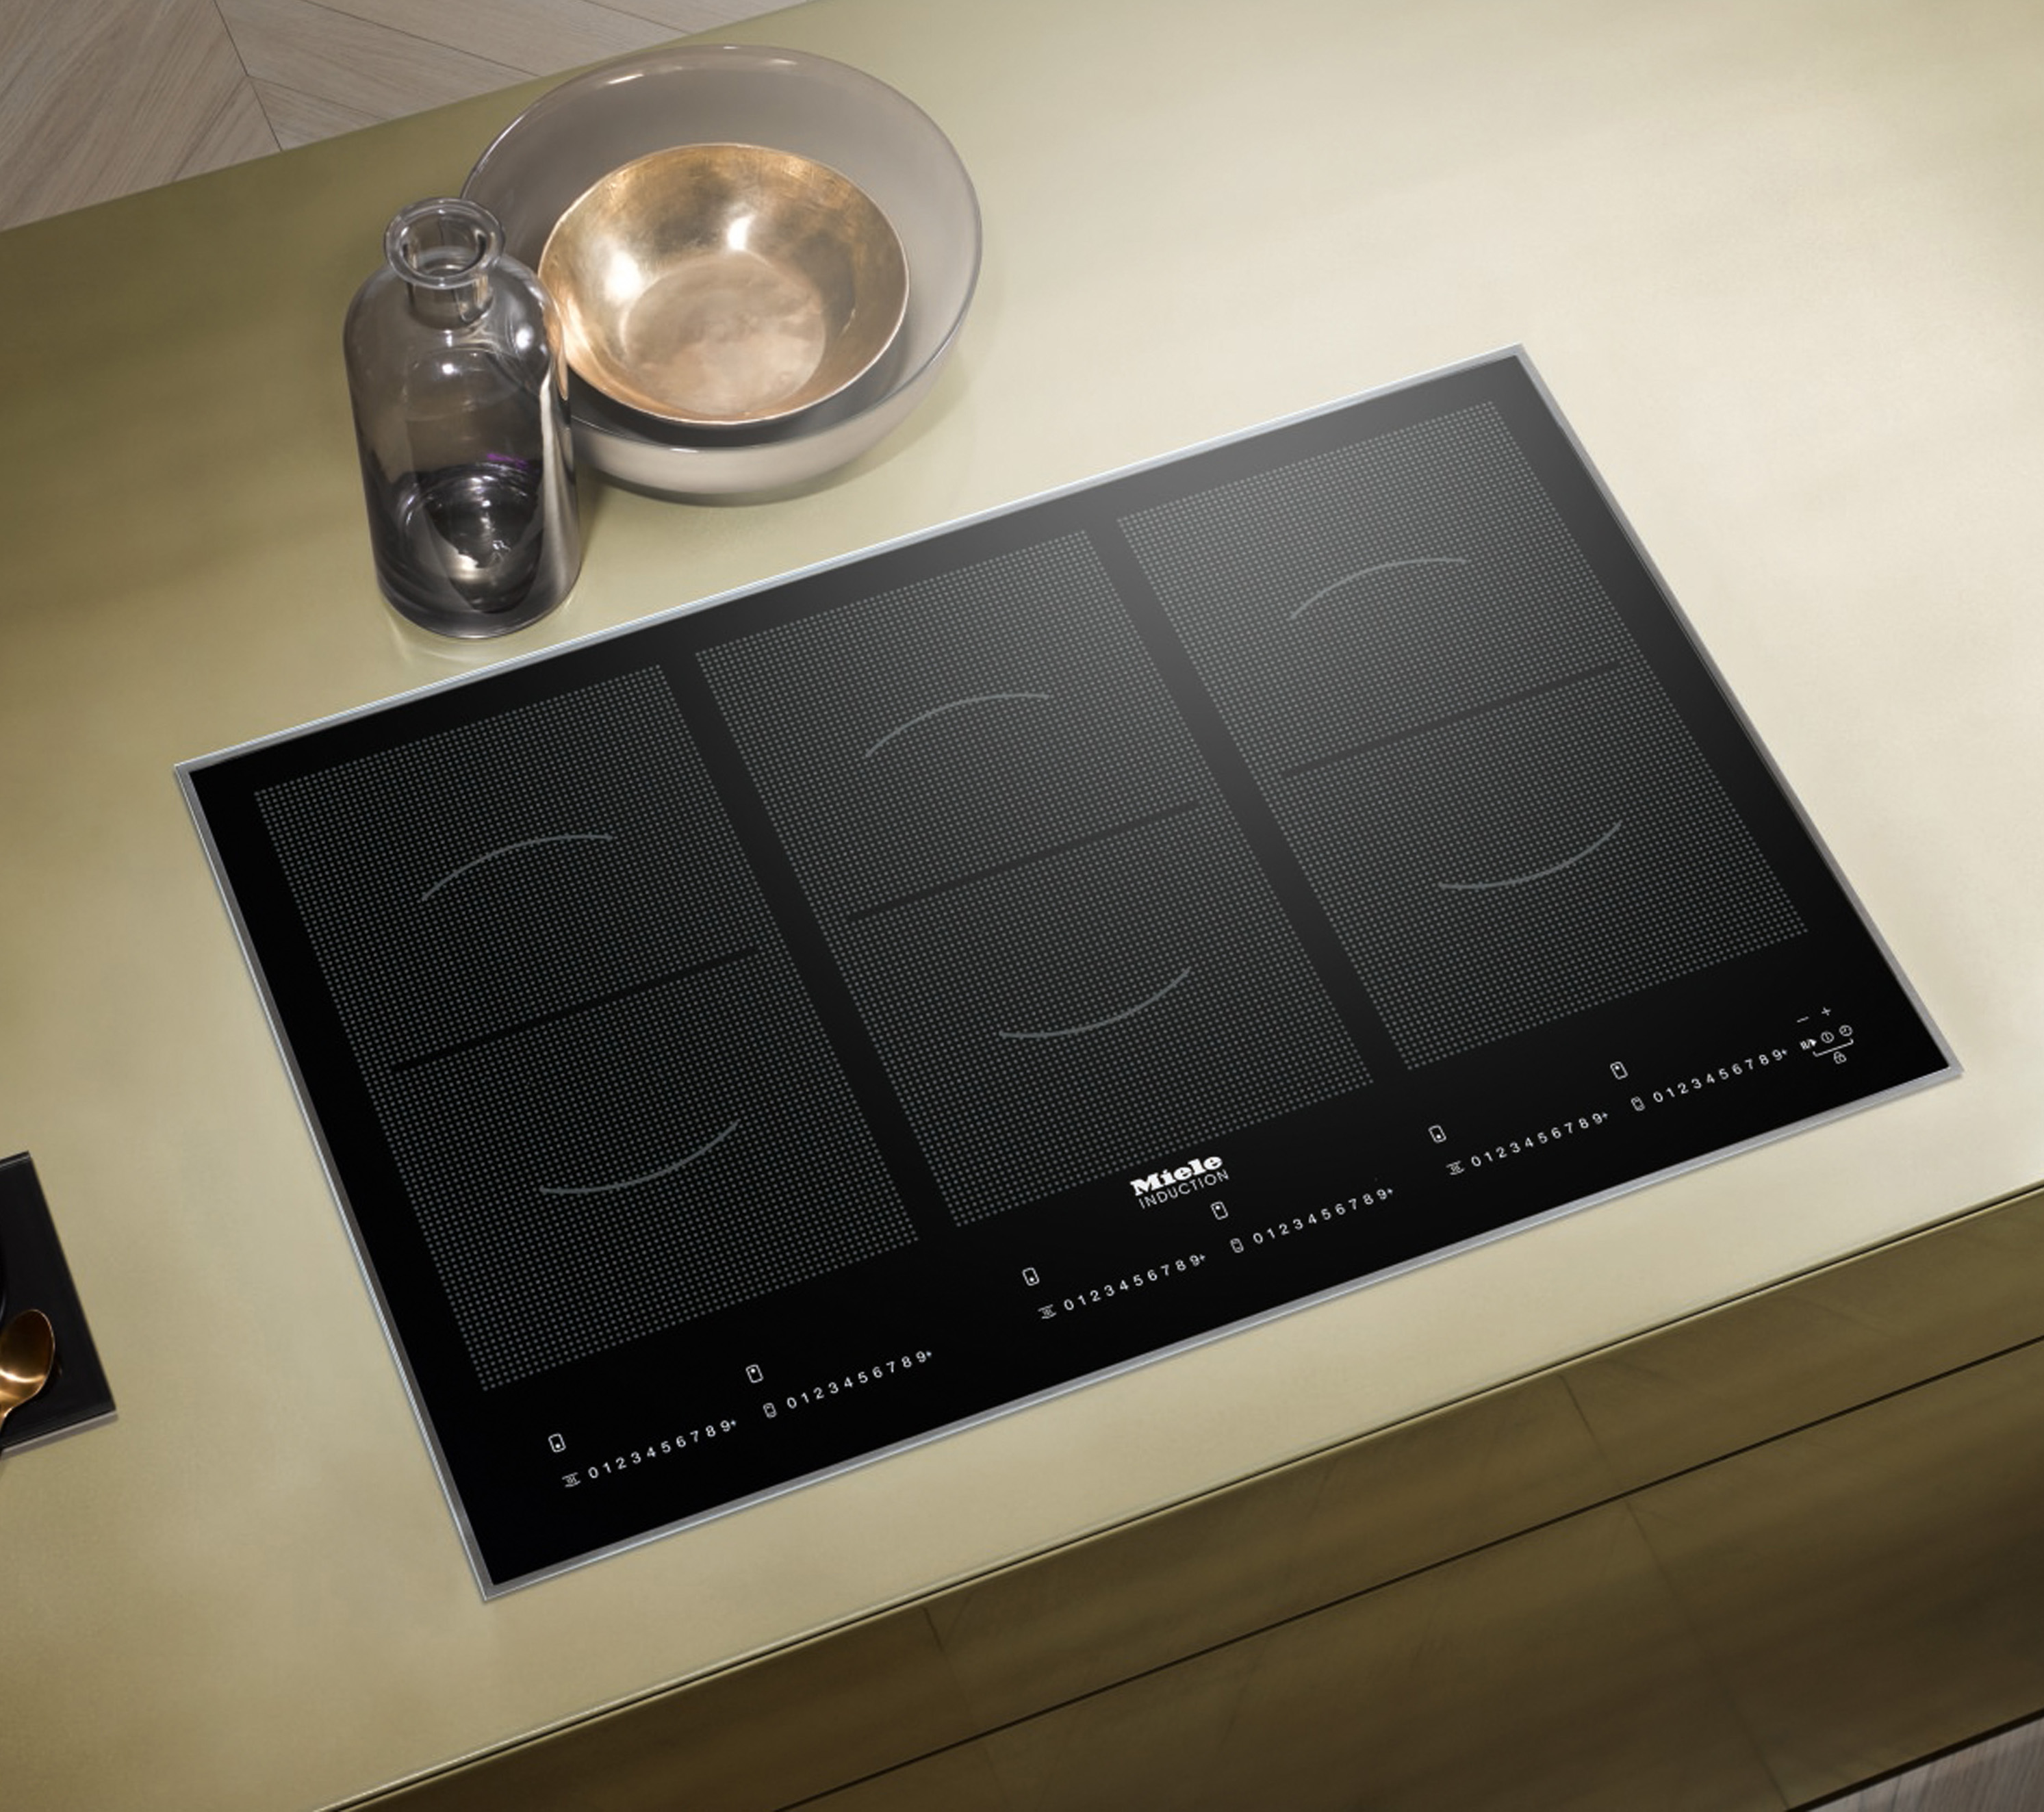 Miele Perfection Series KM 6366-1 Induction Hob